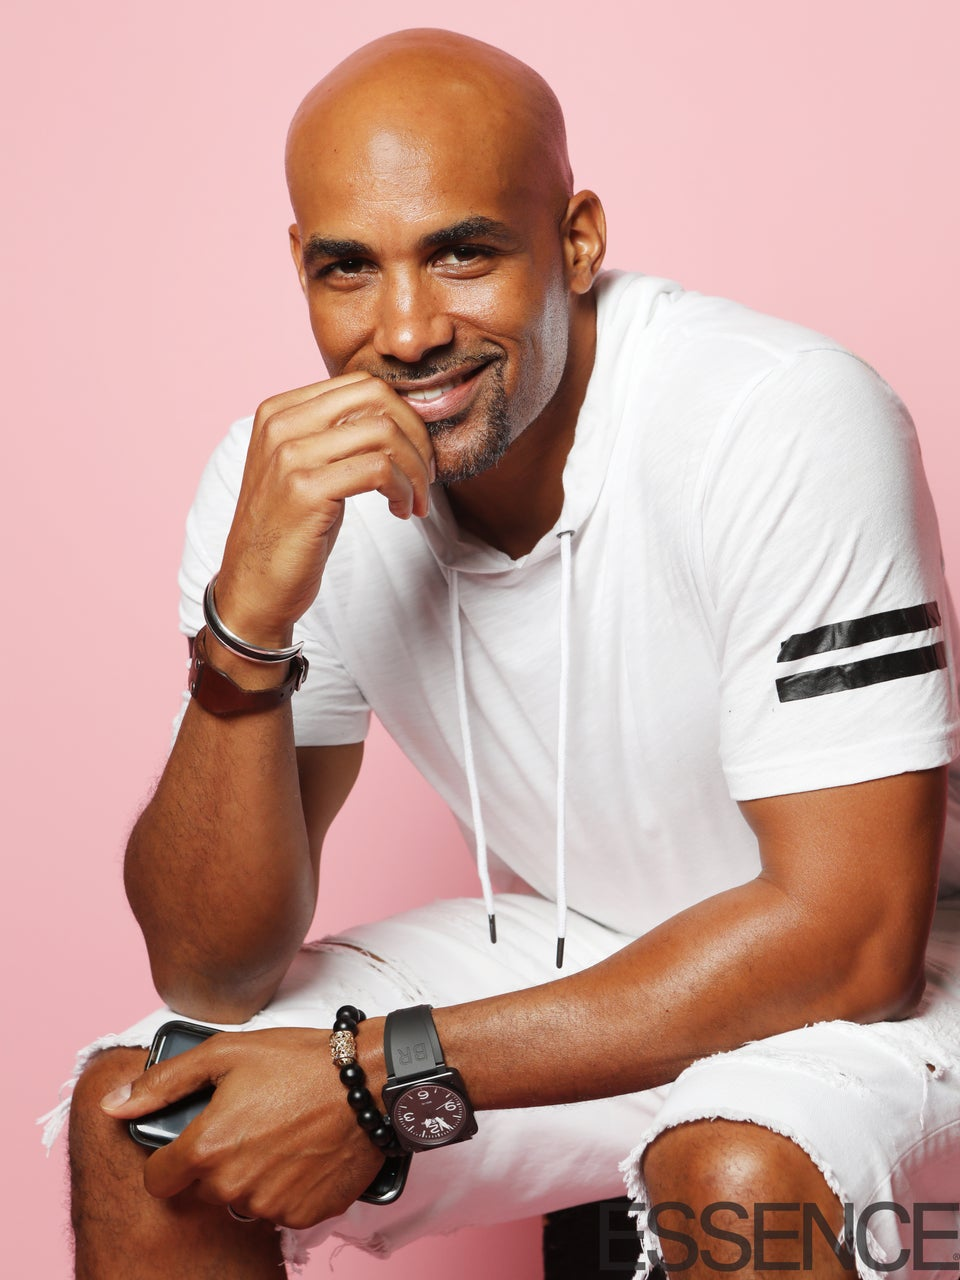 Boris Kodjoe Reveals The Career Advice That Came From This Oscar-Winning Black Actor